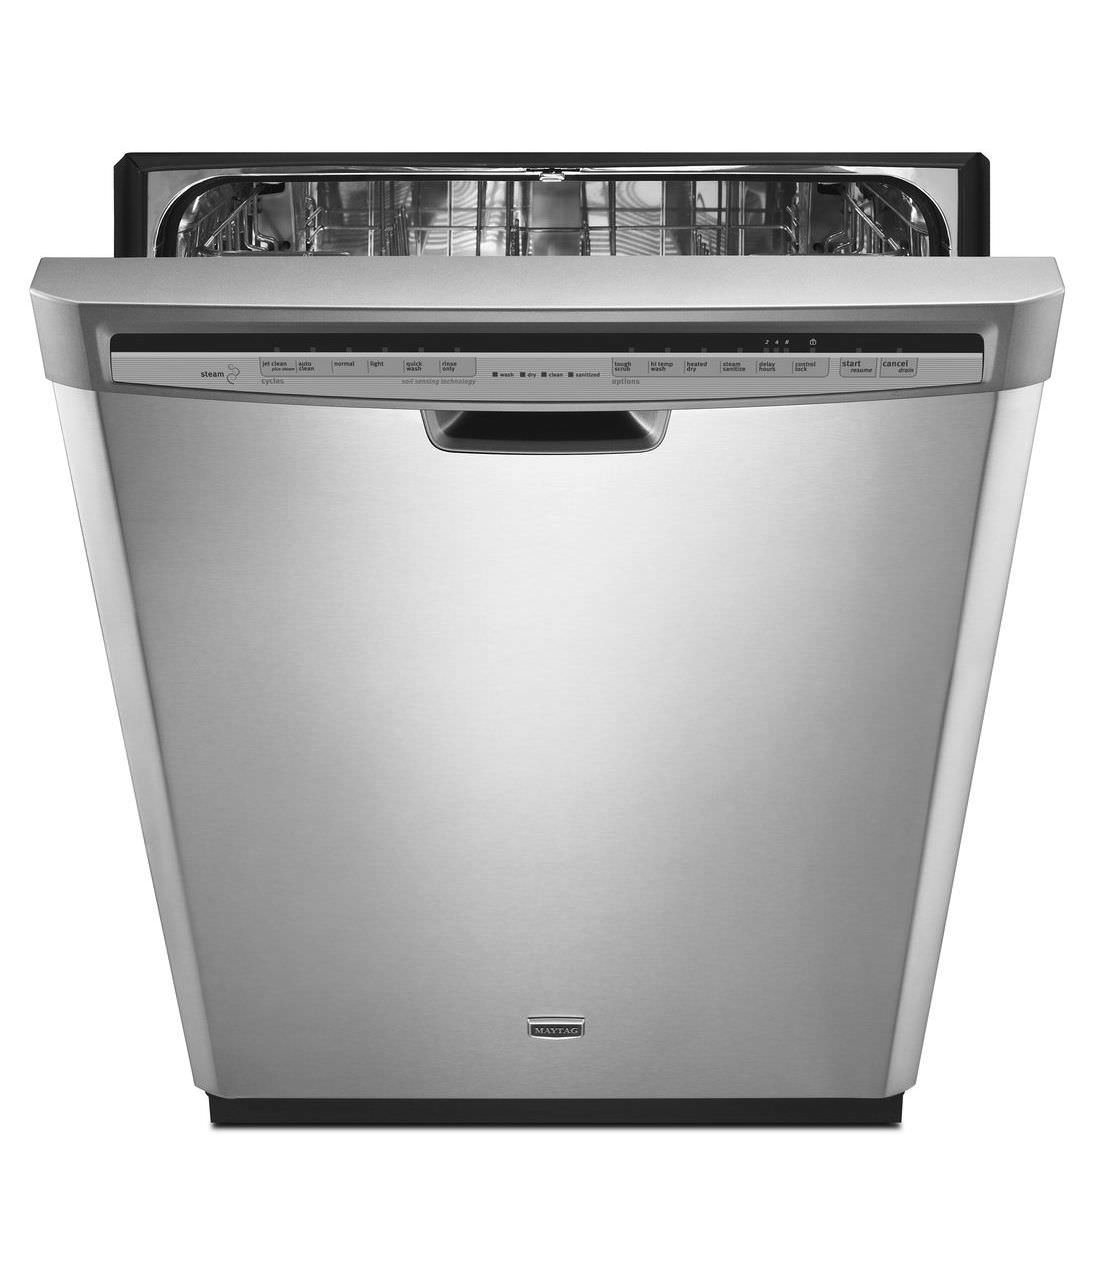 Maytag JetClean Plus Front Control Dishwasher with Steam Cleaning (Model: MDB7749SBM)